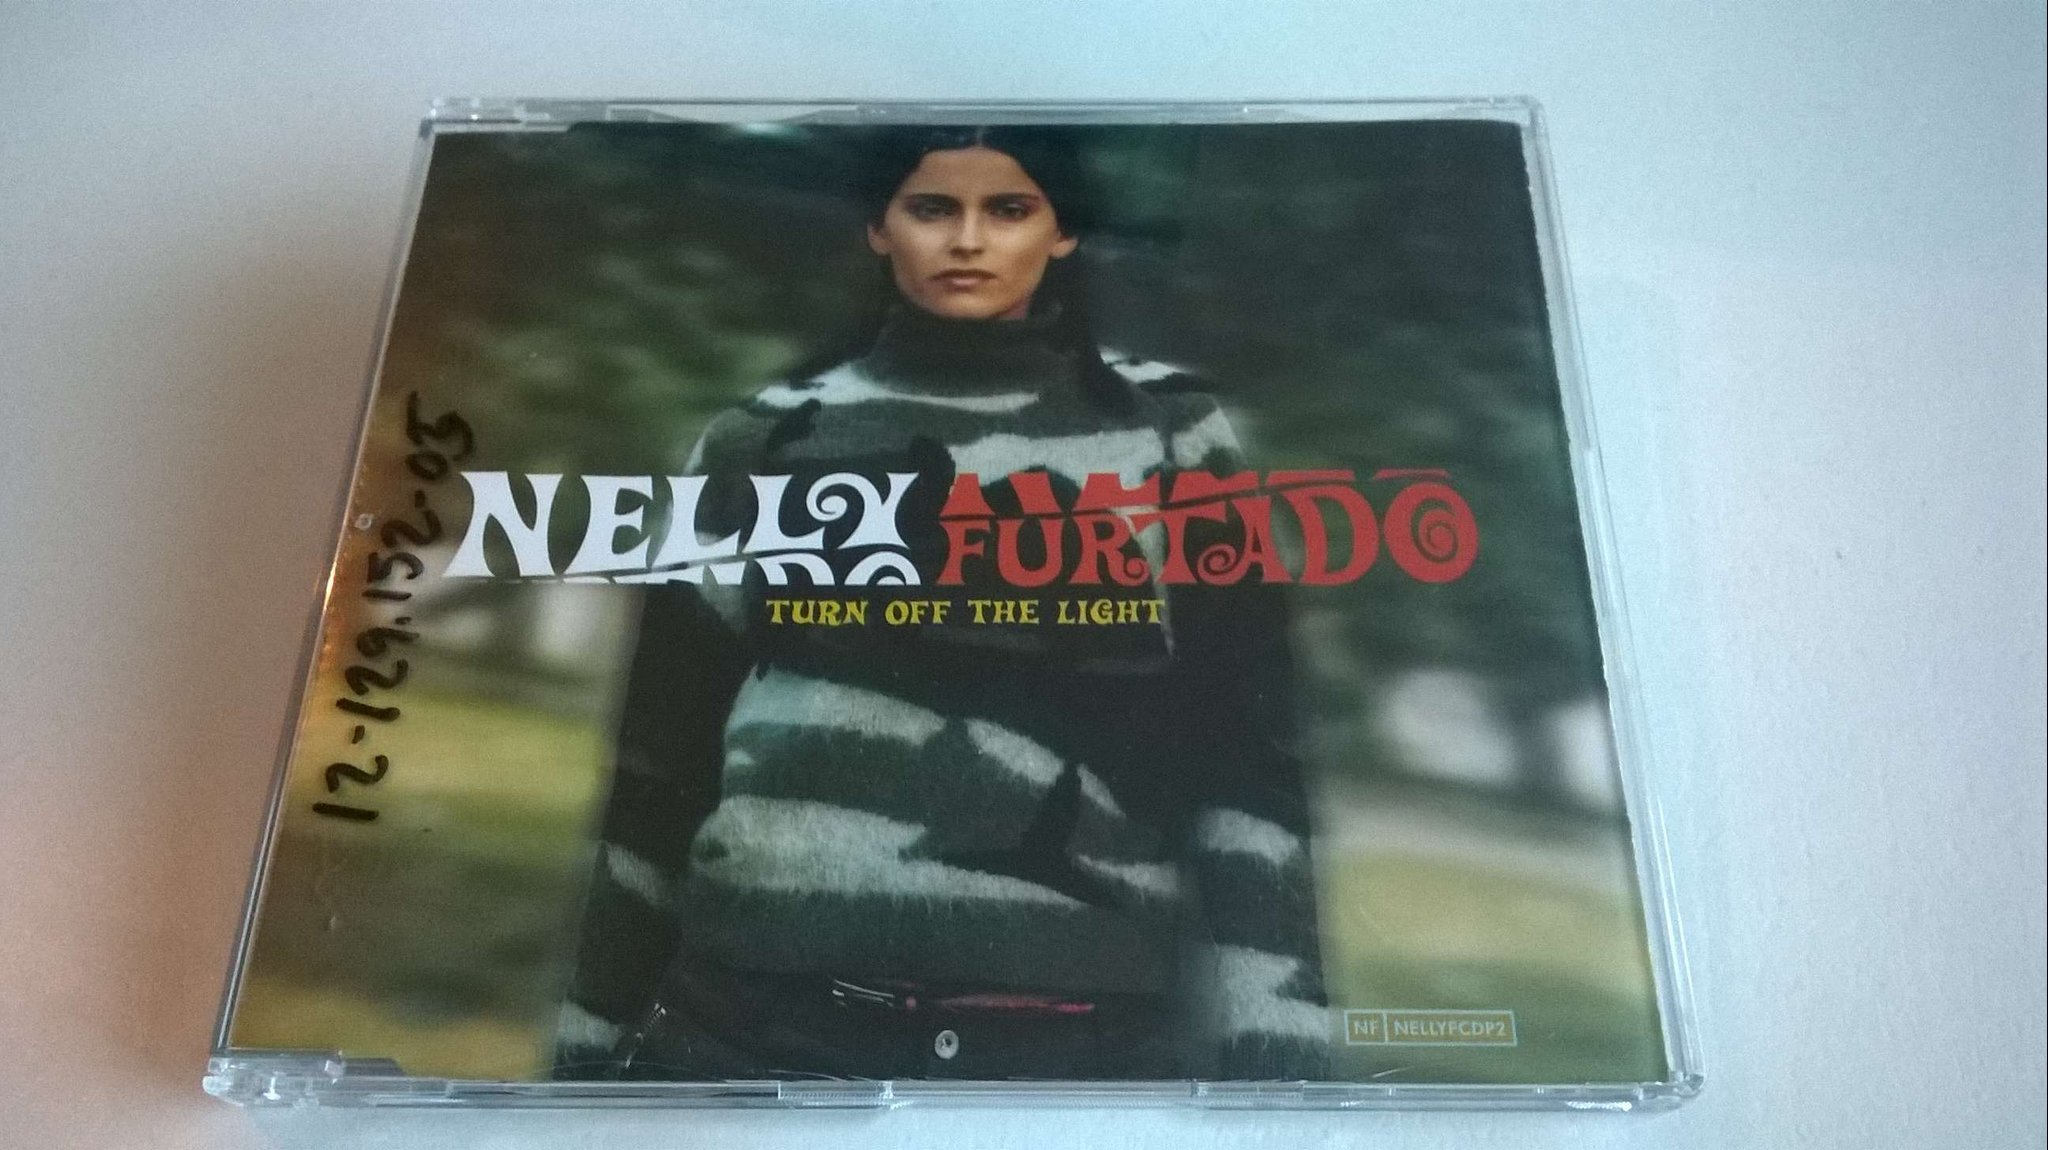 Nelly Furtado ?- Turn Off The Light, CD, Single, Promo